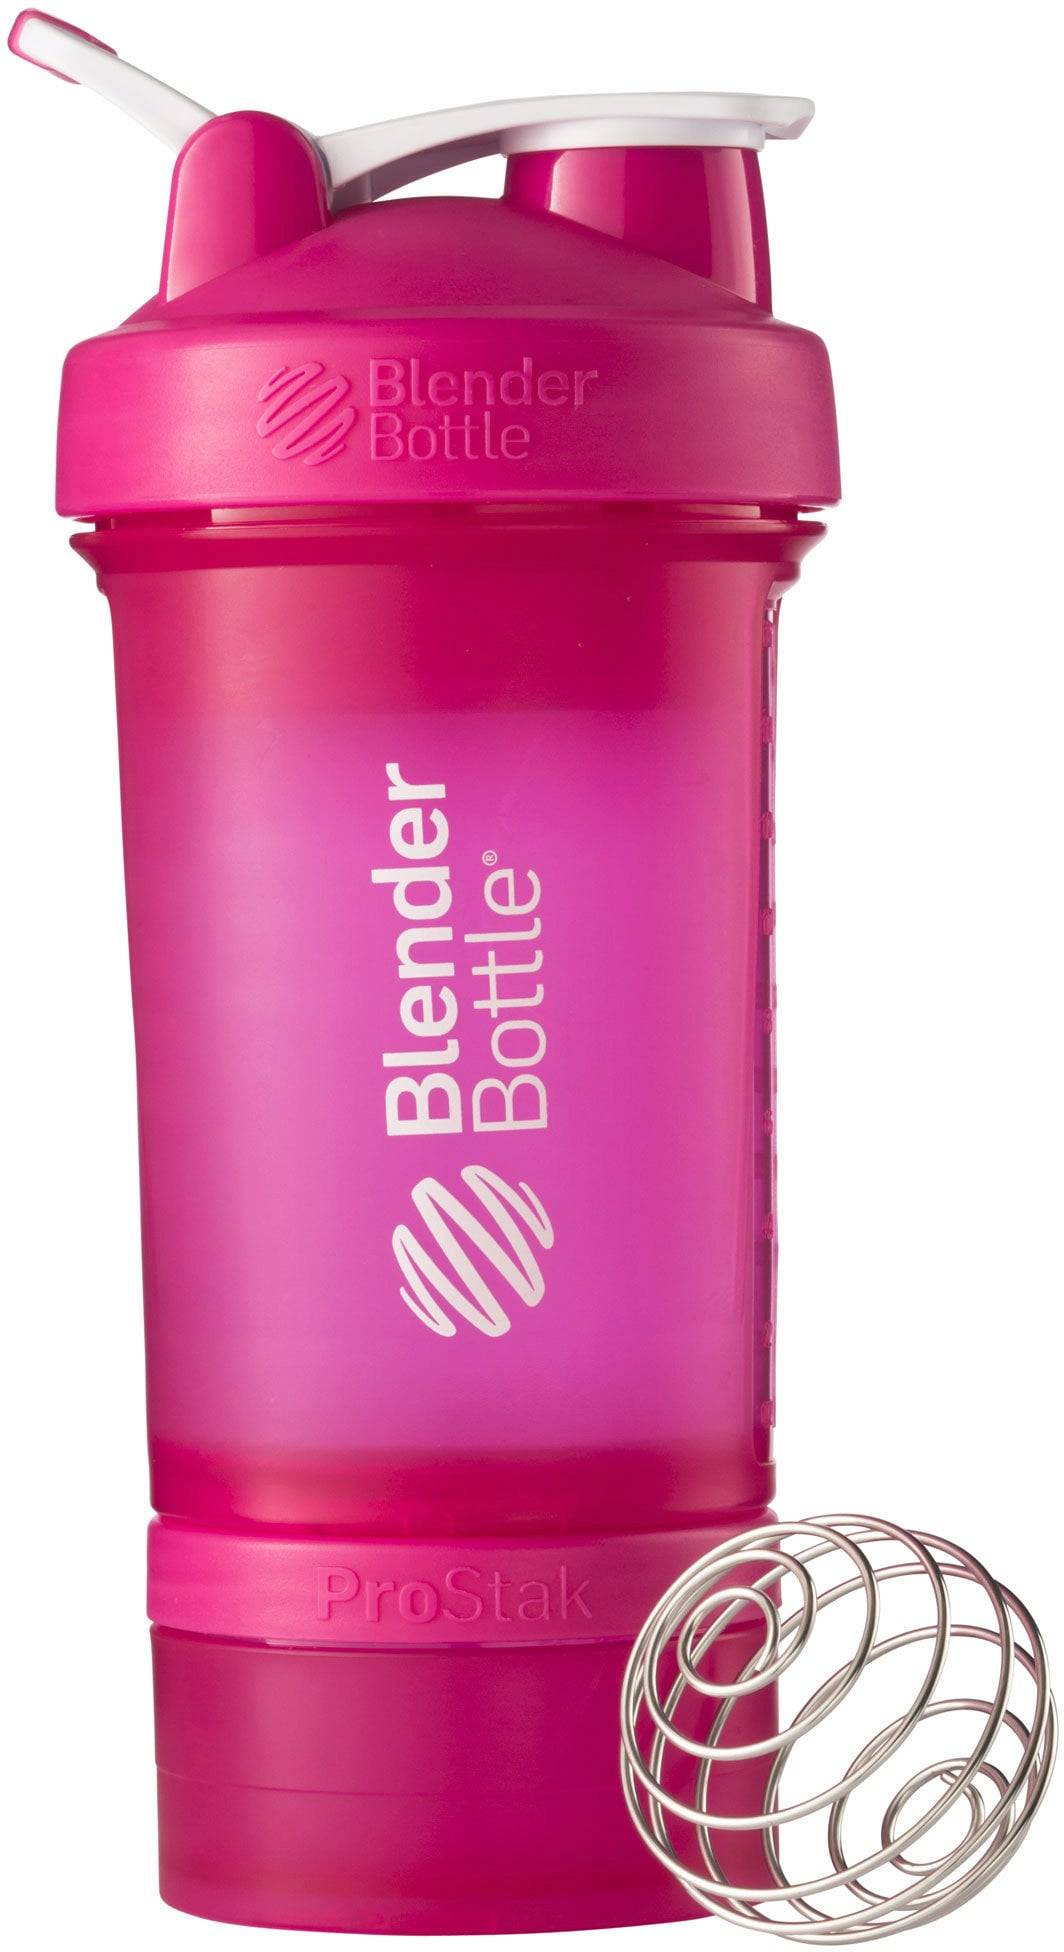 Blender Bottle ProStak Full Color - Rose